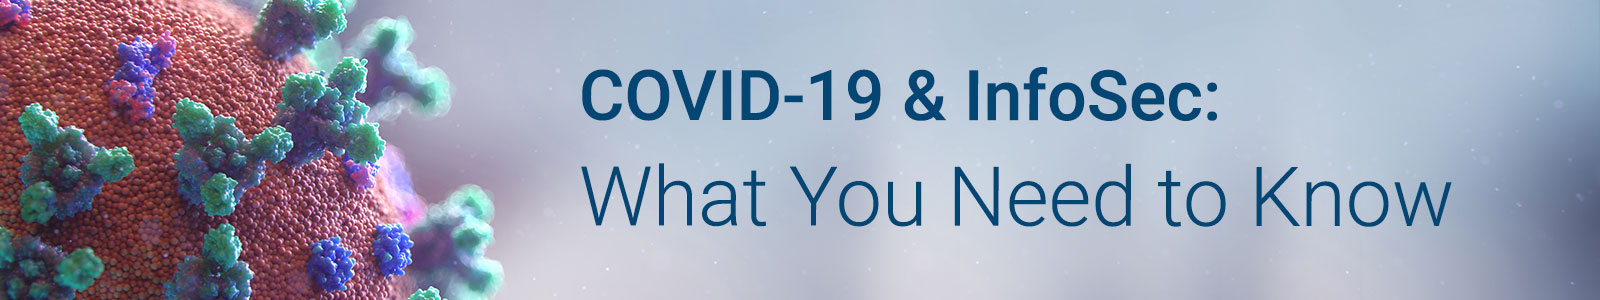 COVID-19 and InfoSec: What You Need to Know